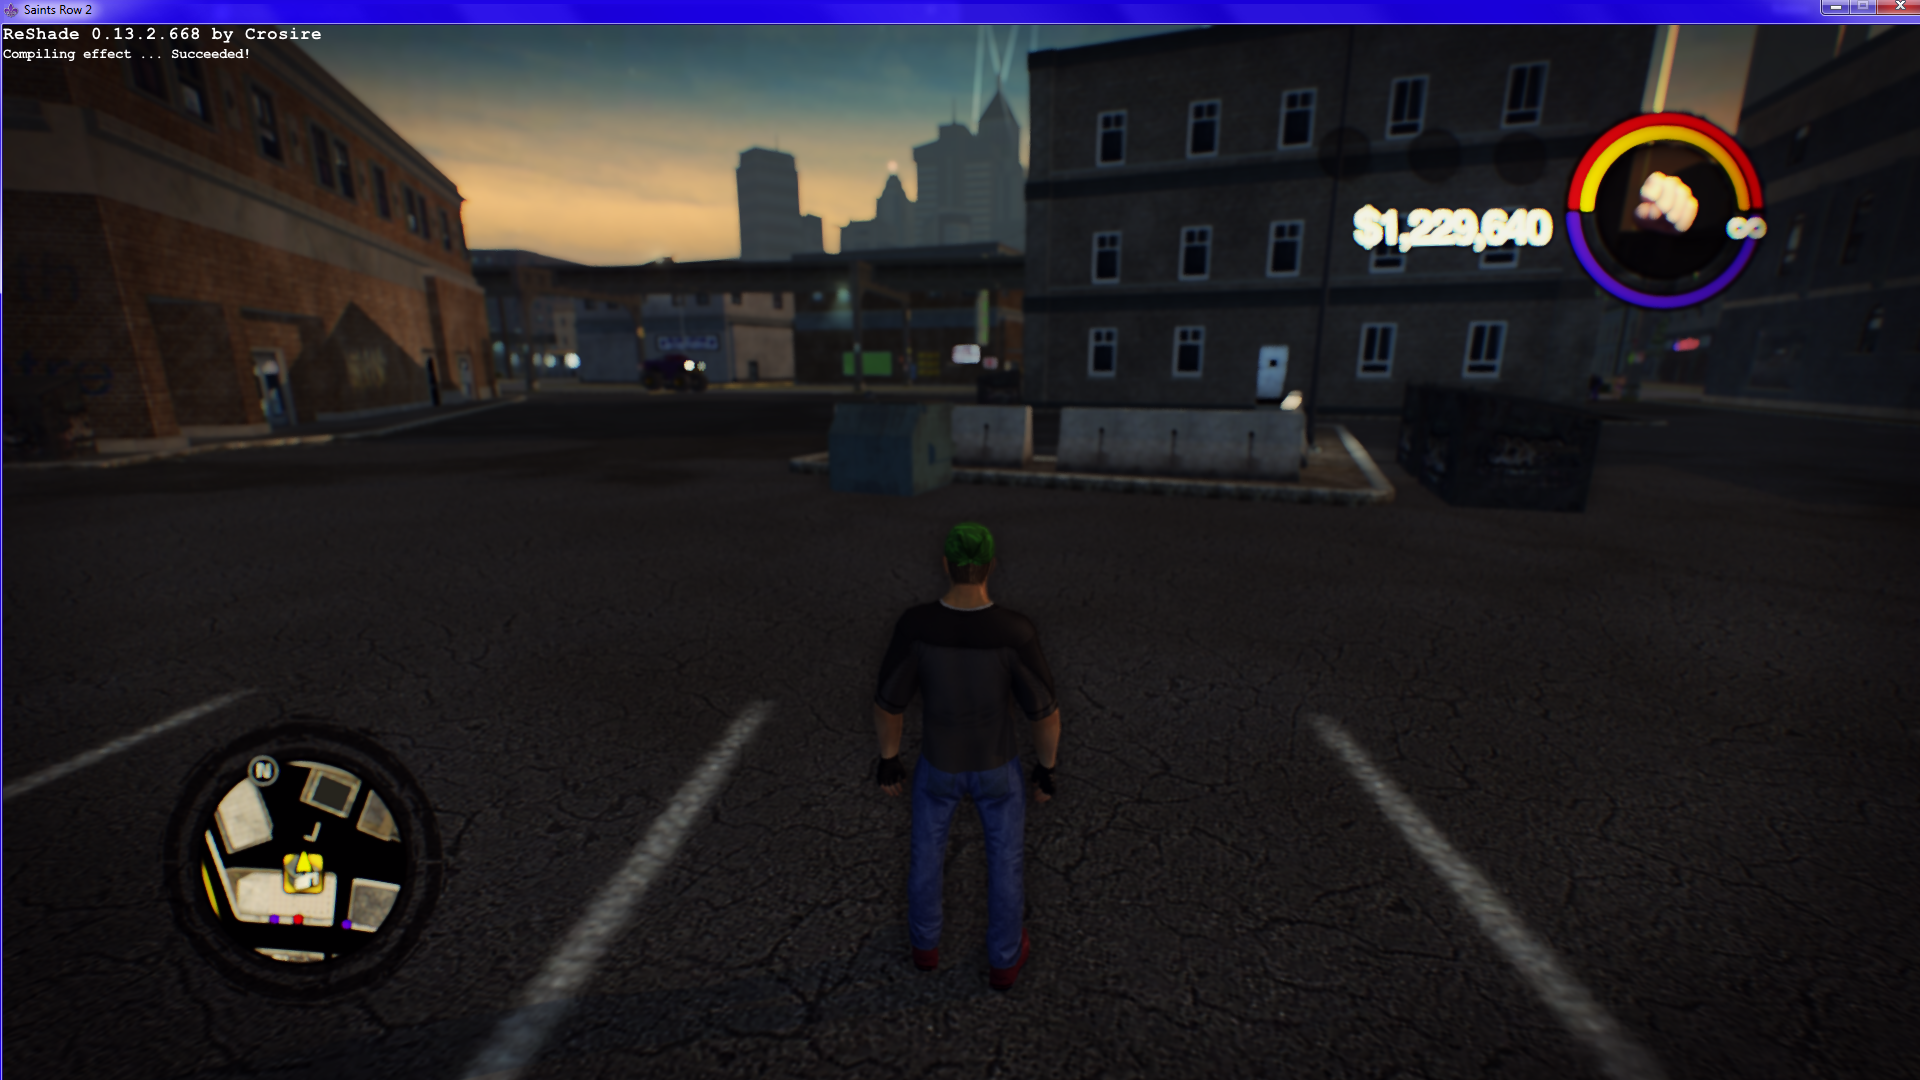 Saints row 2 patch pron image